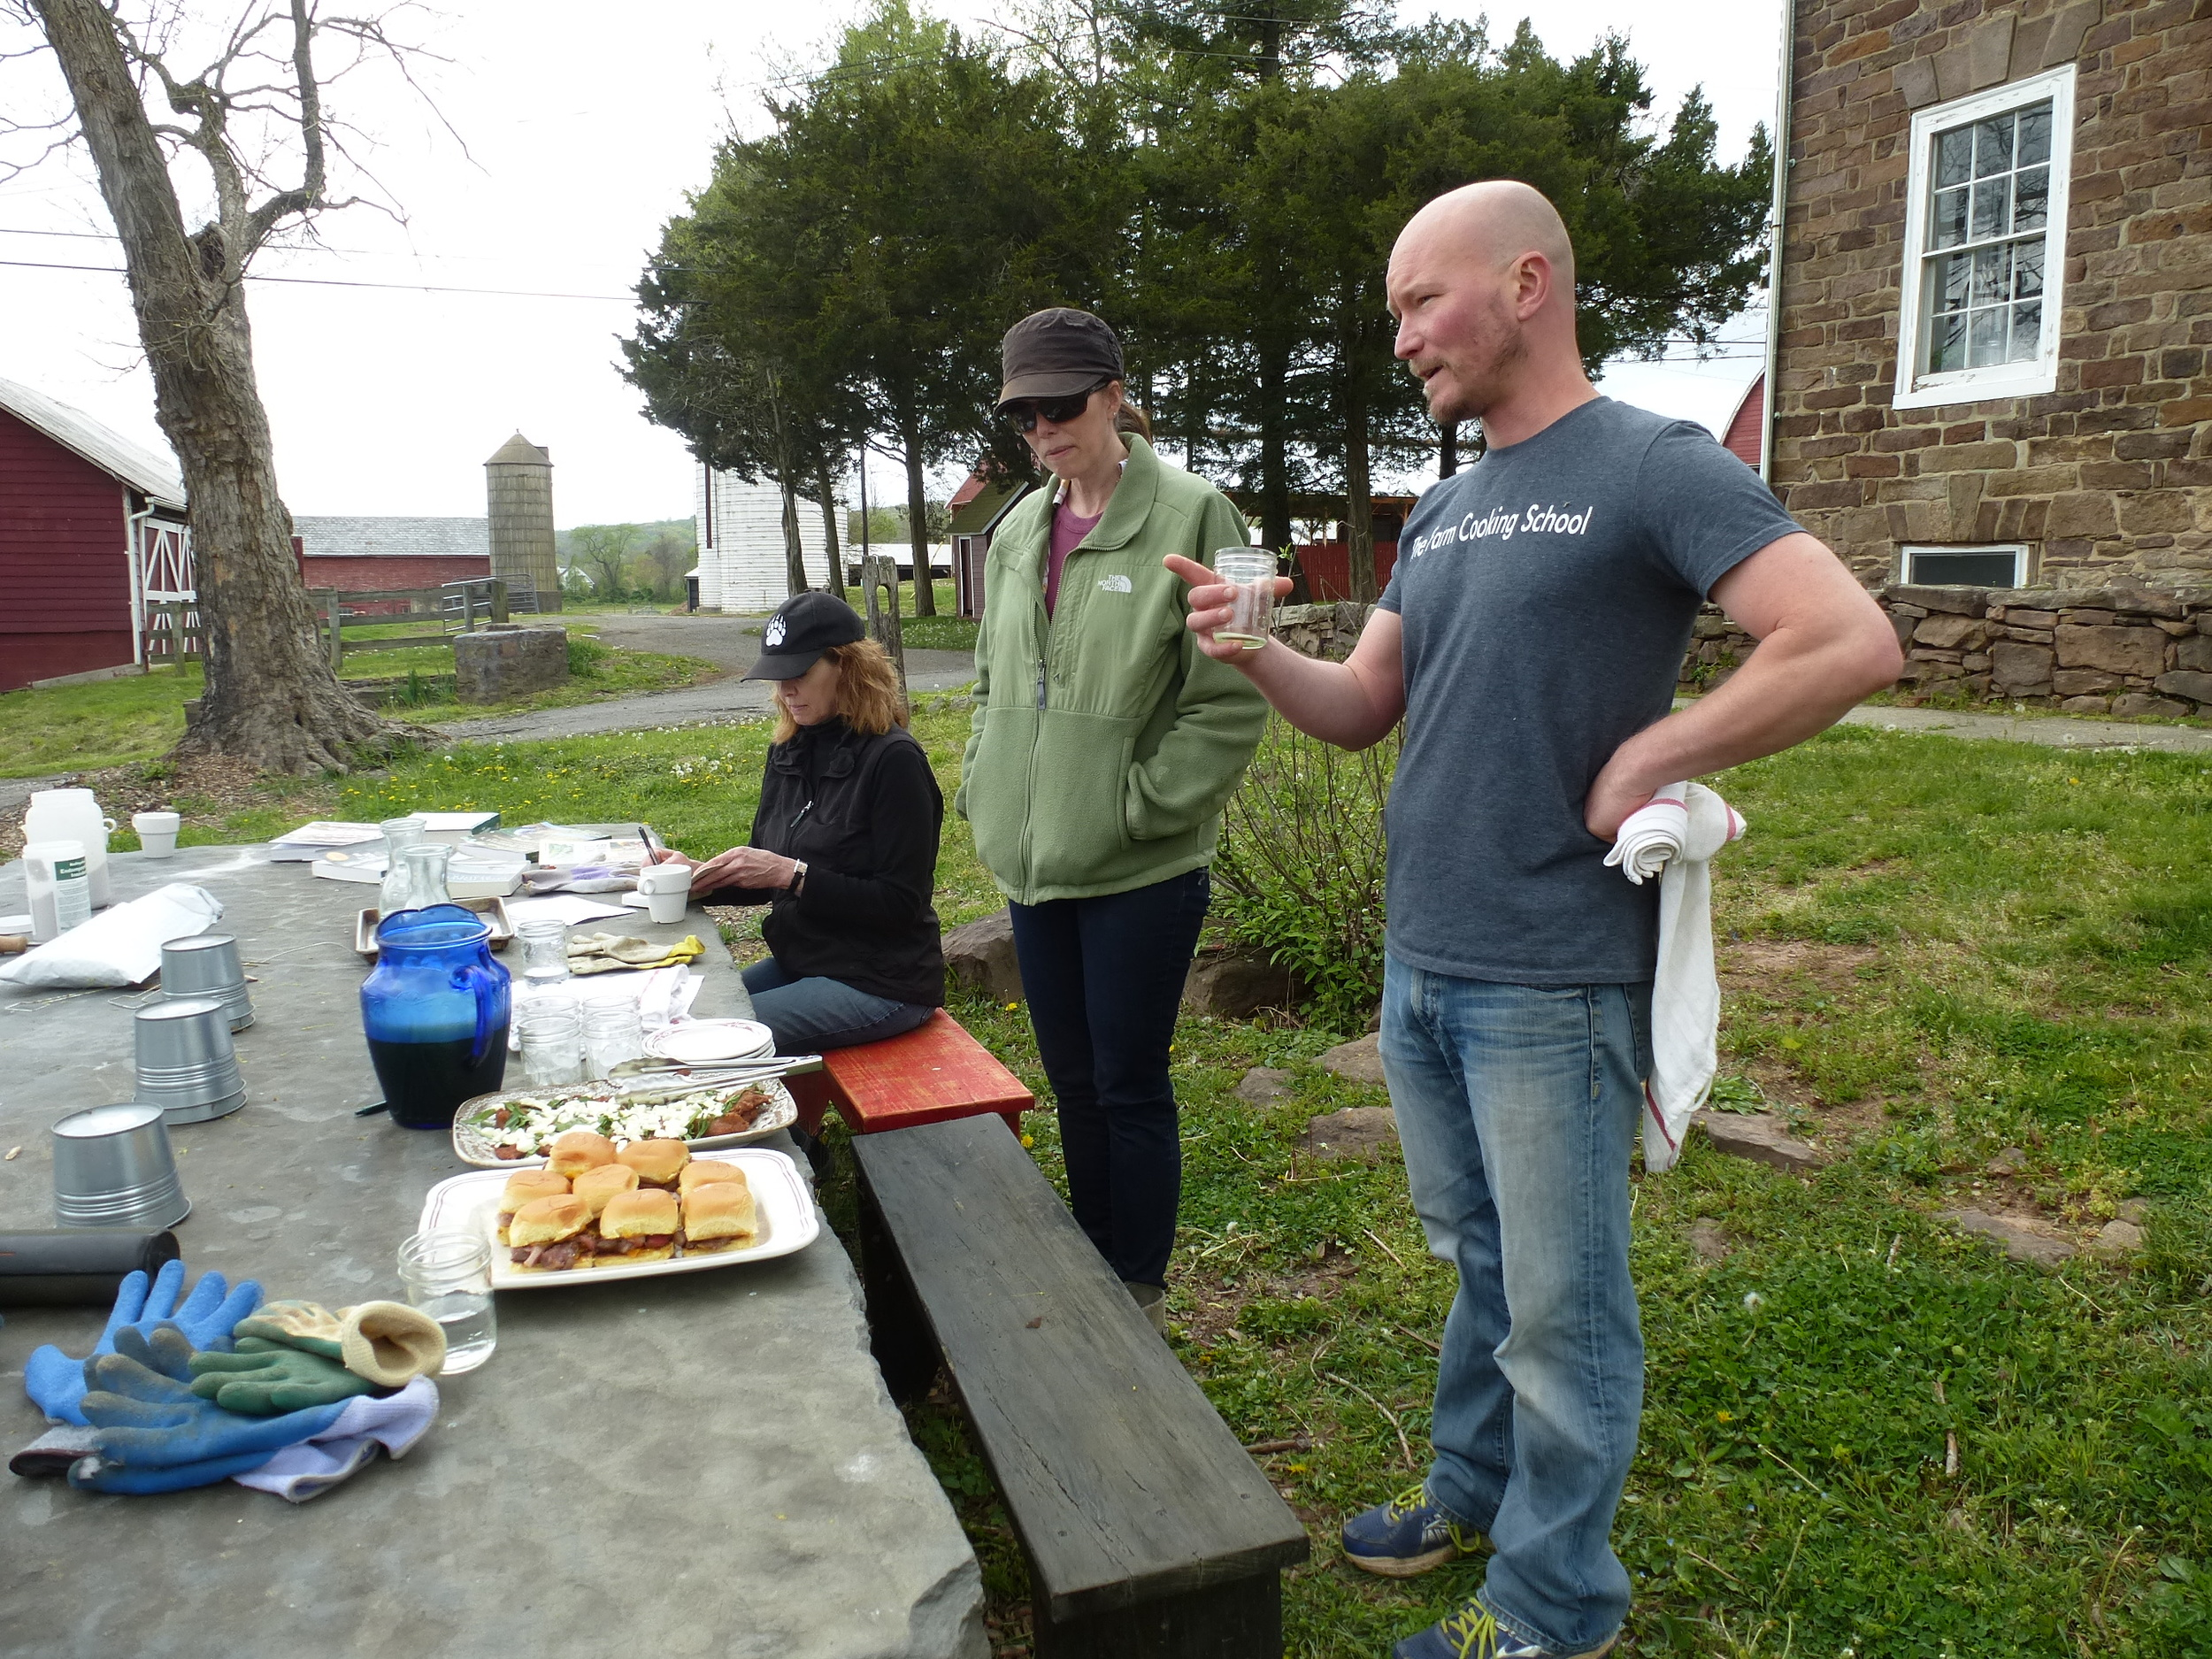 We thoroughly enjoyed the delicious snack break with Ian Knauer.